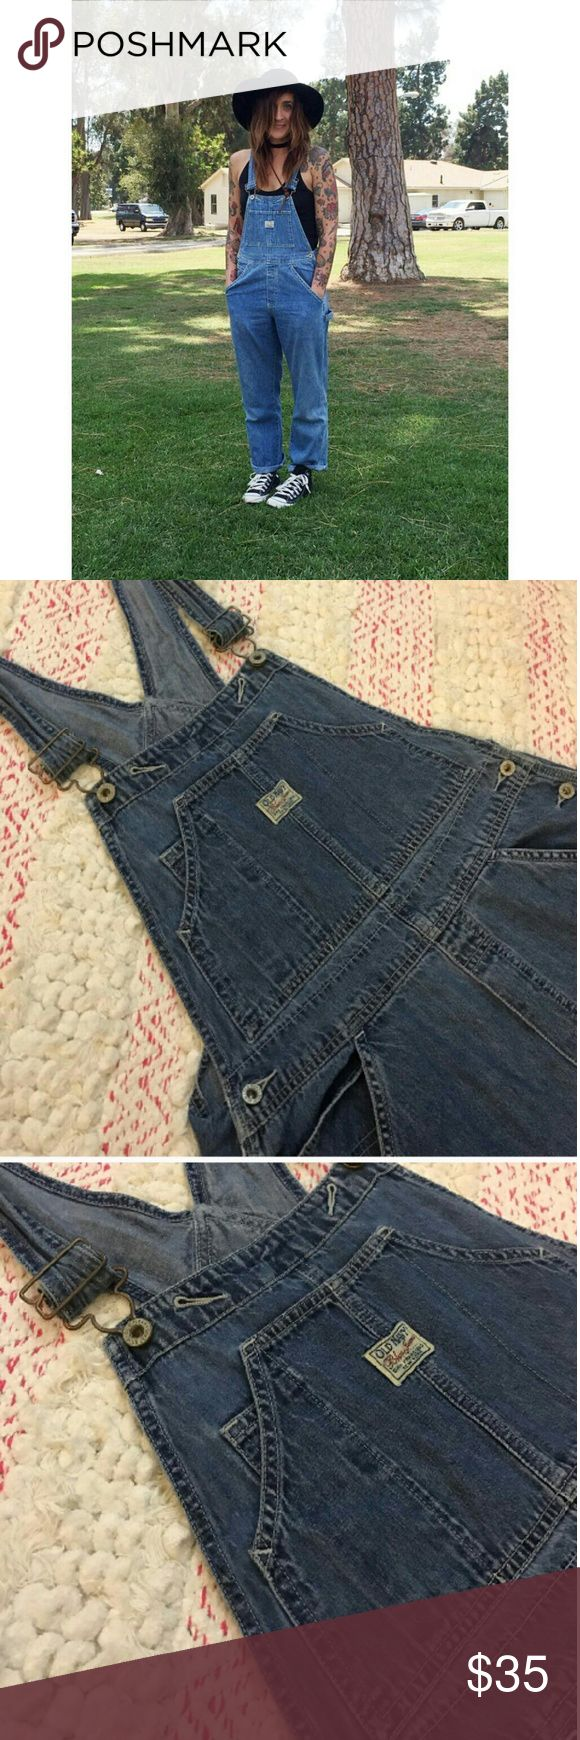 """Old Navy Overalls Vintage 1990's Old Navy Overalls. Really cute but I am way too short forbthese!  Do bummed out bc they're adorable & this trend is coming back!! Size Medium. Inseam 30"""" Excellent conditionm Old Navy Pants Jumpsuits & Rompers"""